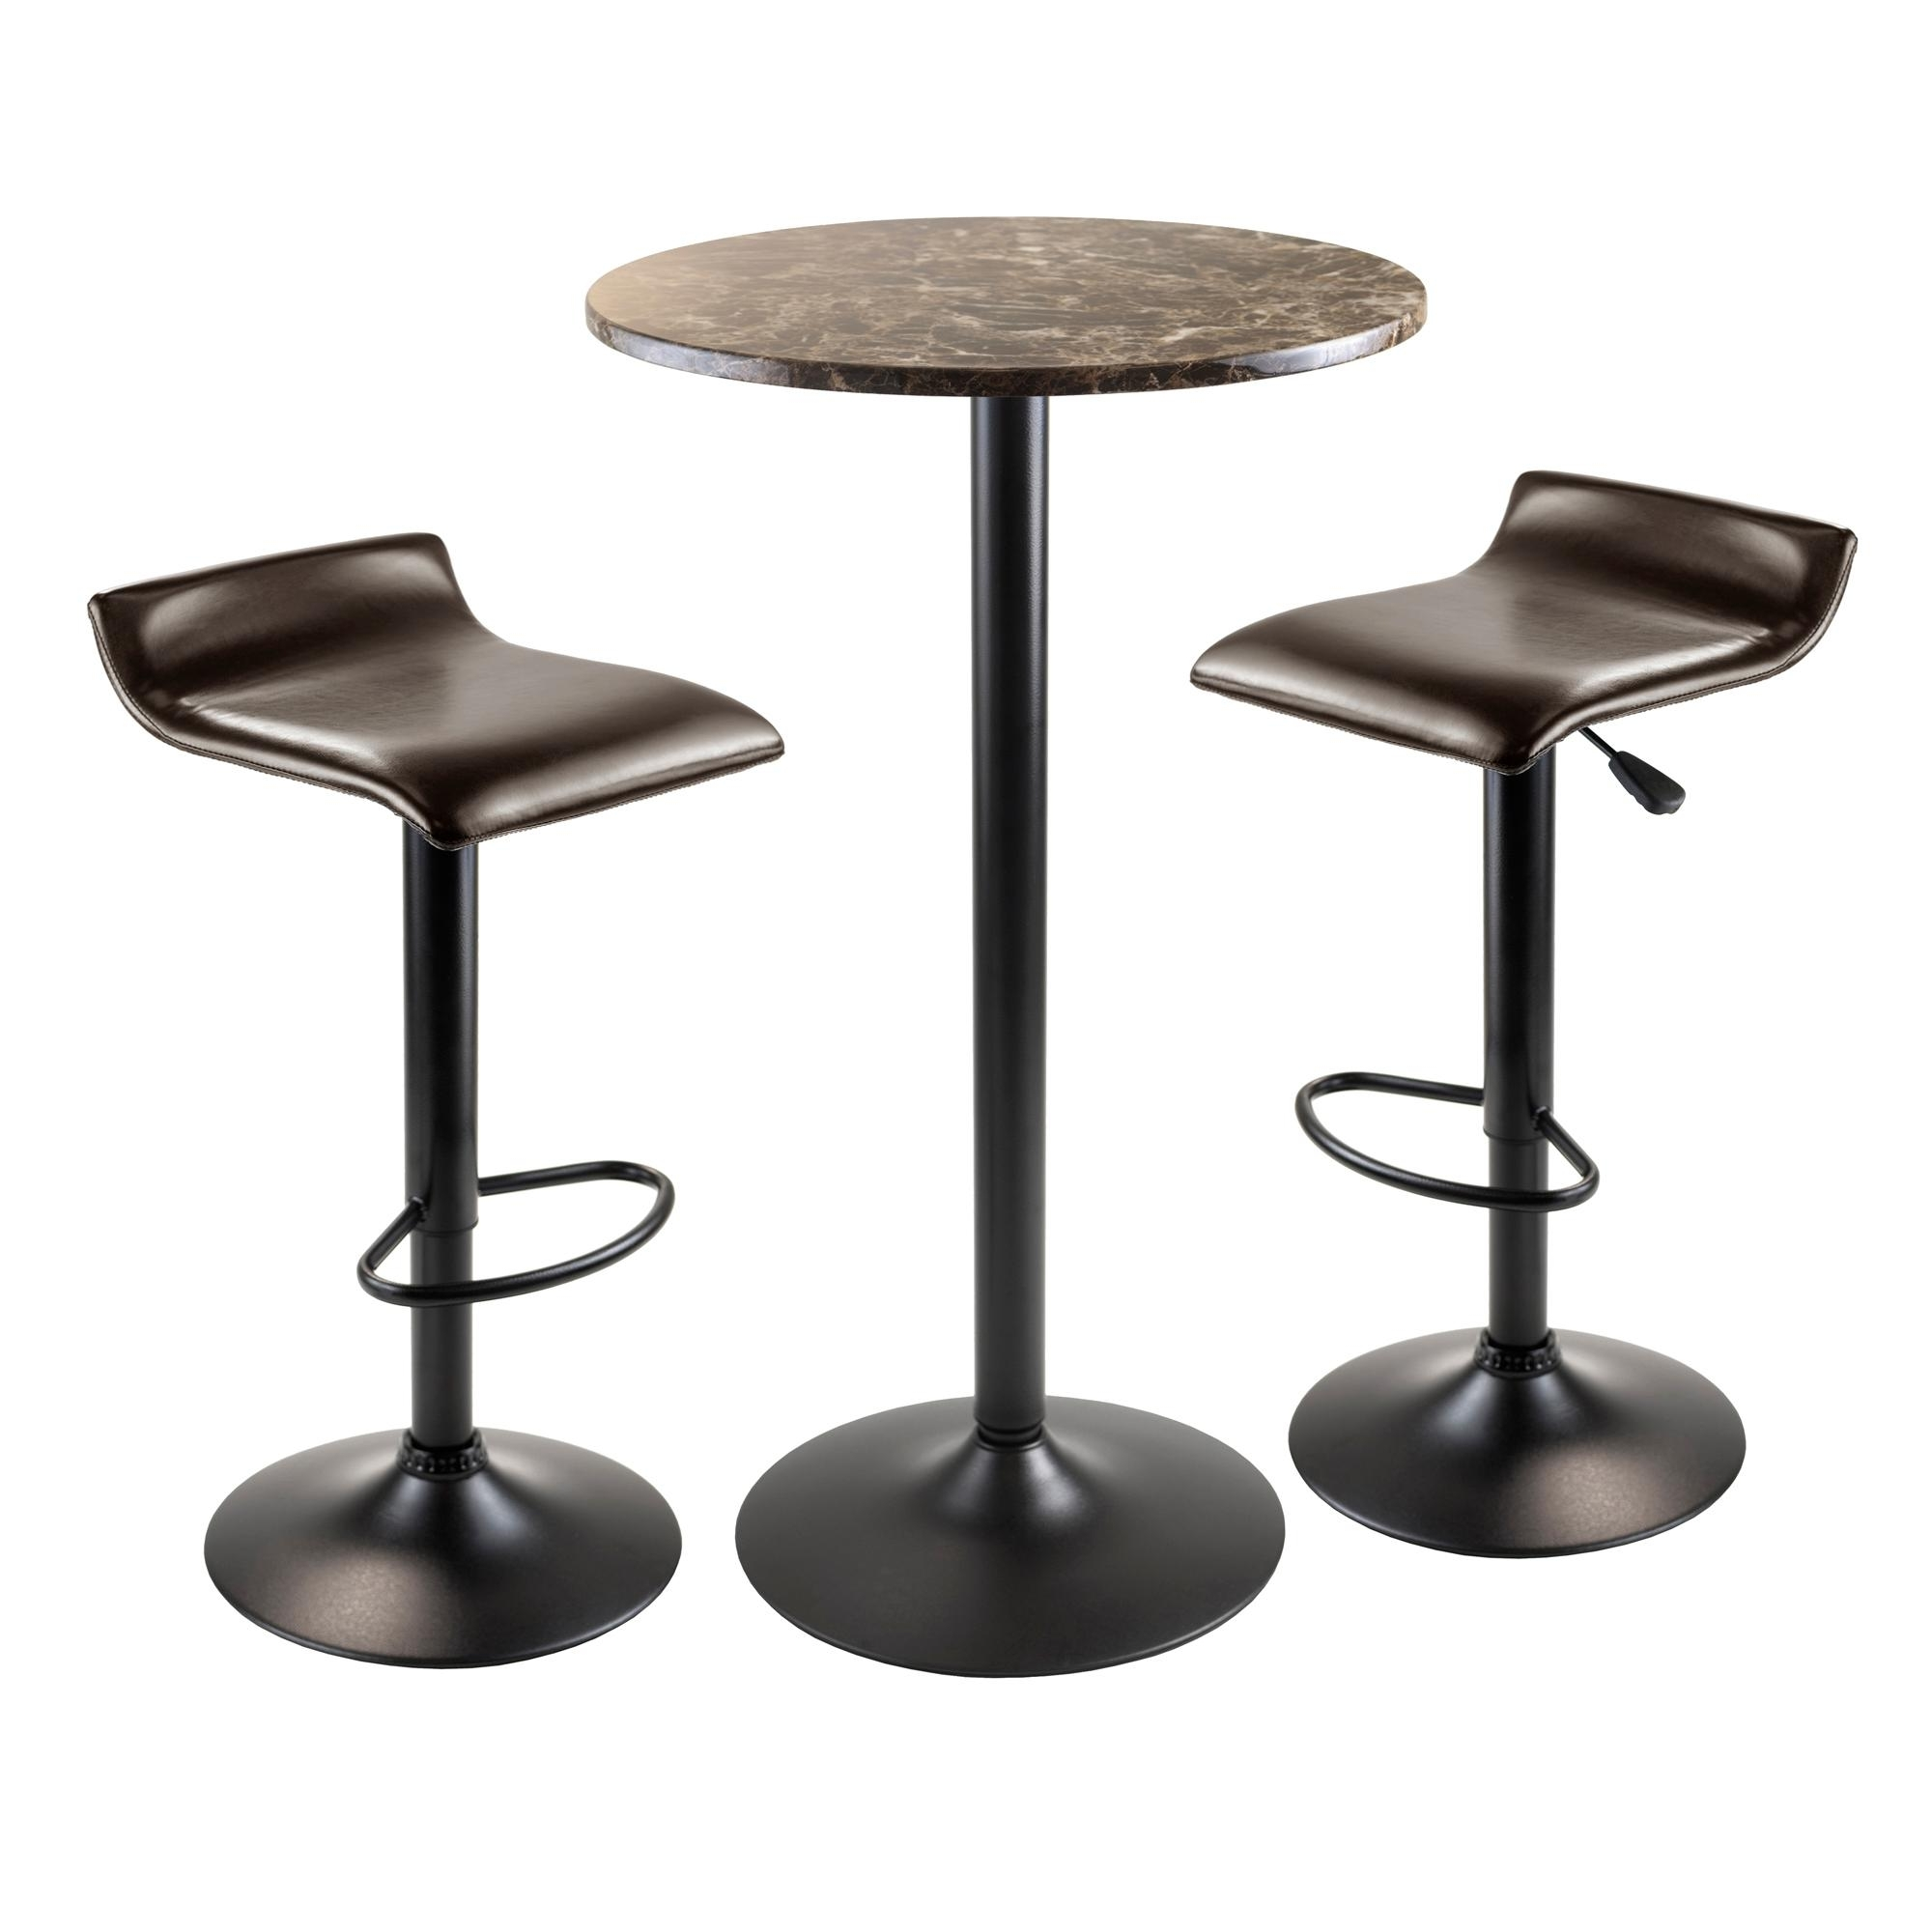 Amazon: Winsome Wood Cora 3 Piece Round Pub Table With 2 Swivel Intended For Latest Cora 7 Piece Dining Sets (View 17 of 25)